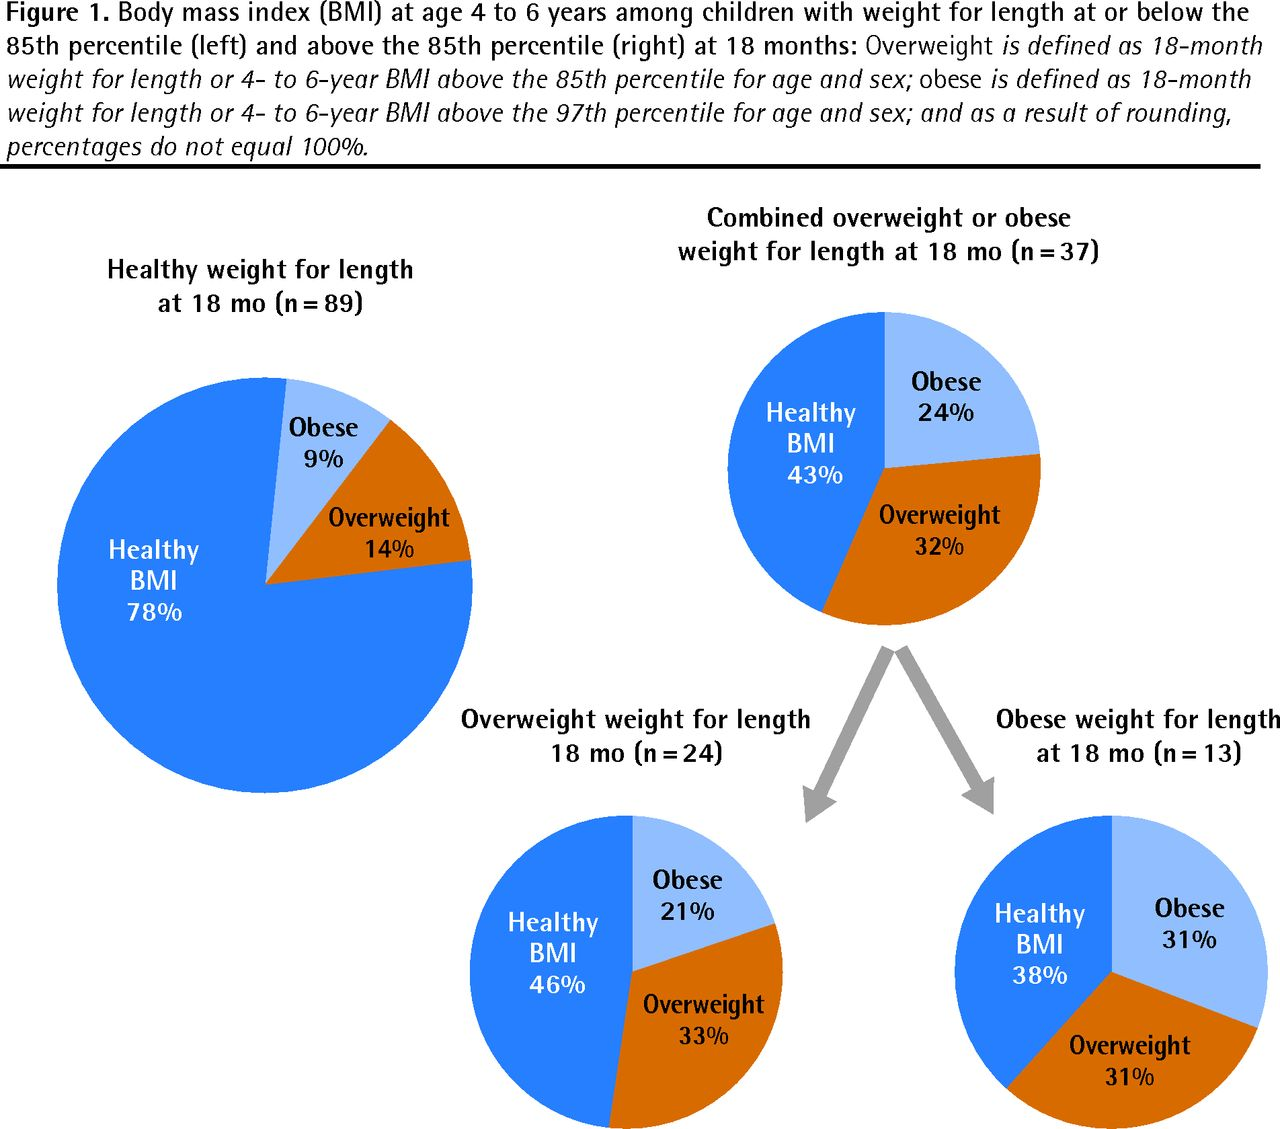 Figure 1 Risk Of Obesity At 4 To 6 Years Of Age Among Overweight Or Obese